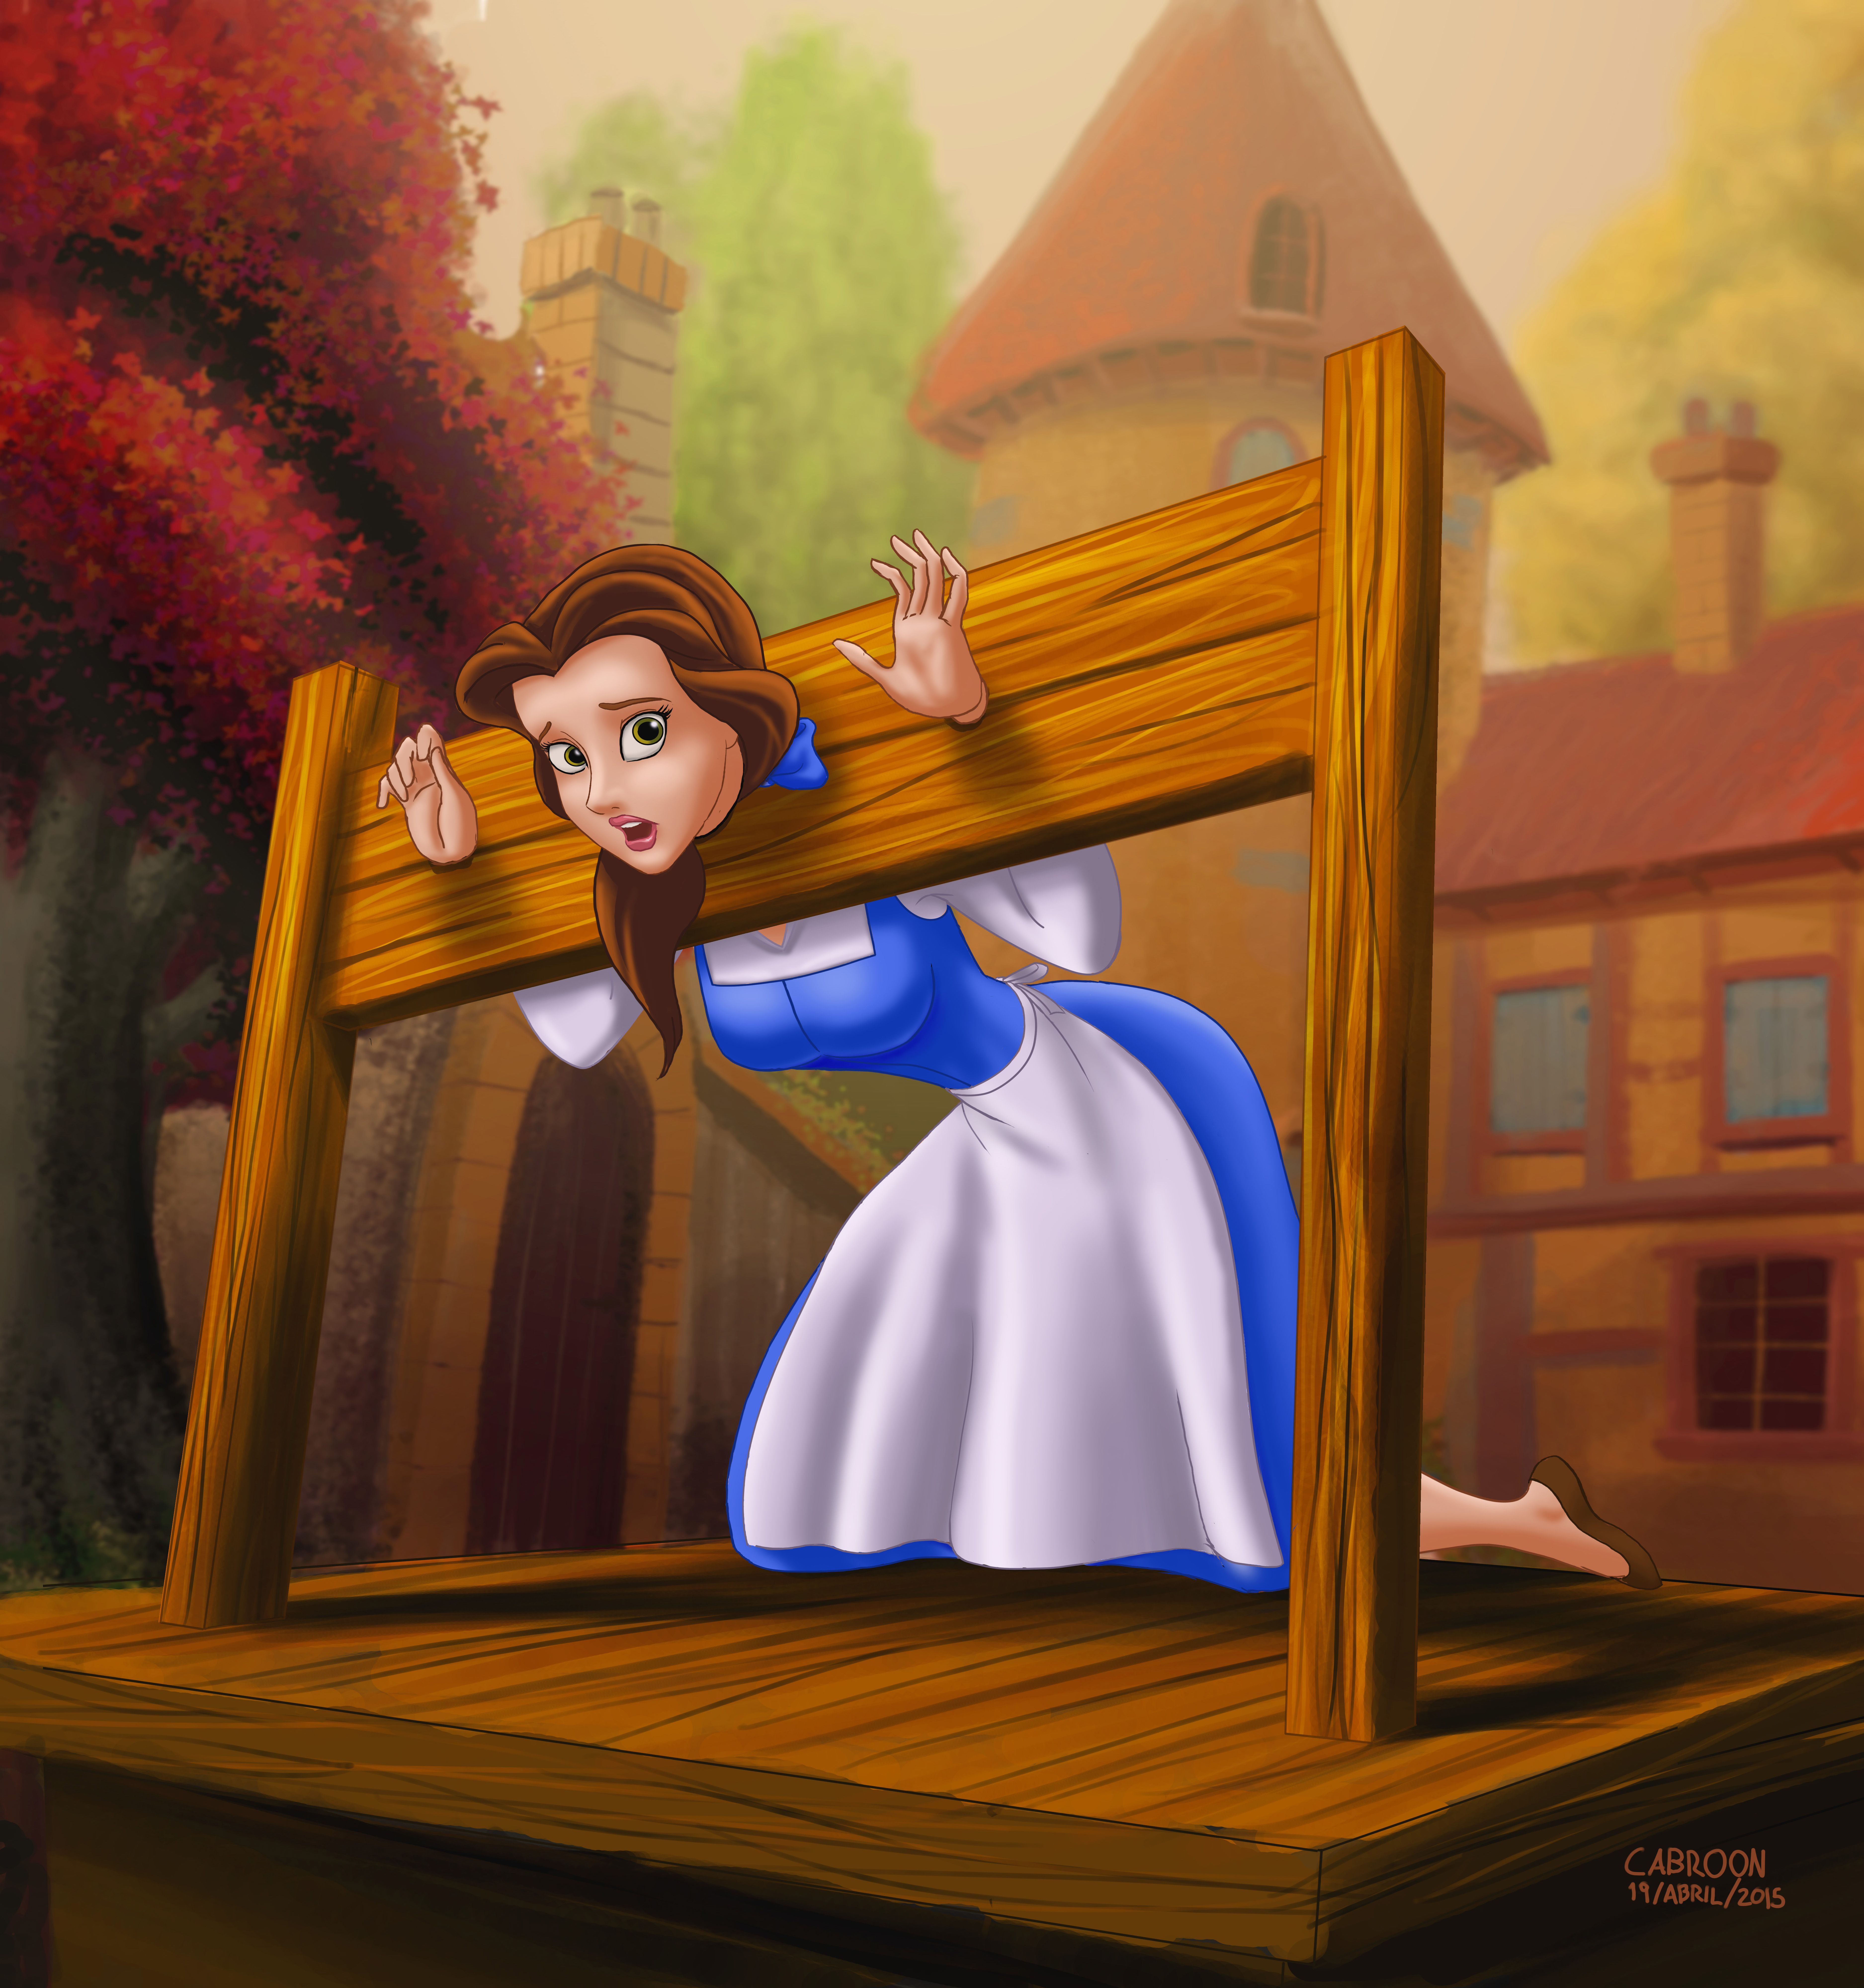 Belle [as A Damsel In Distress] (Drawing By Cabroon